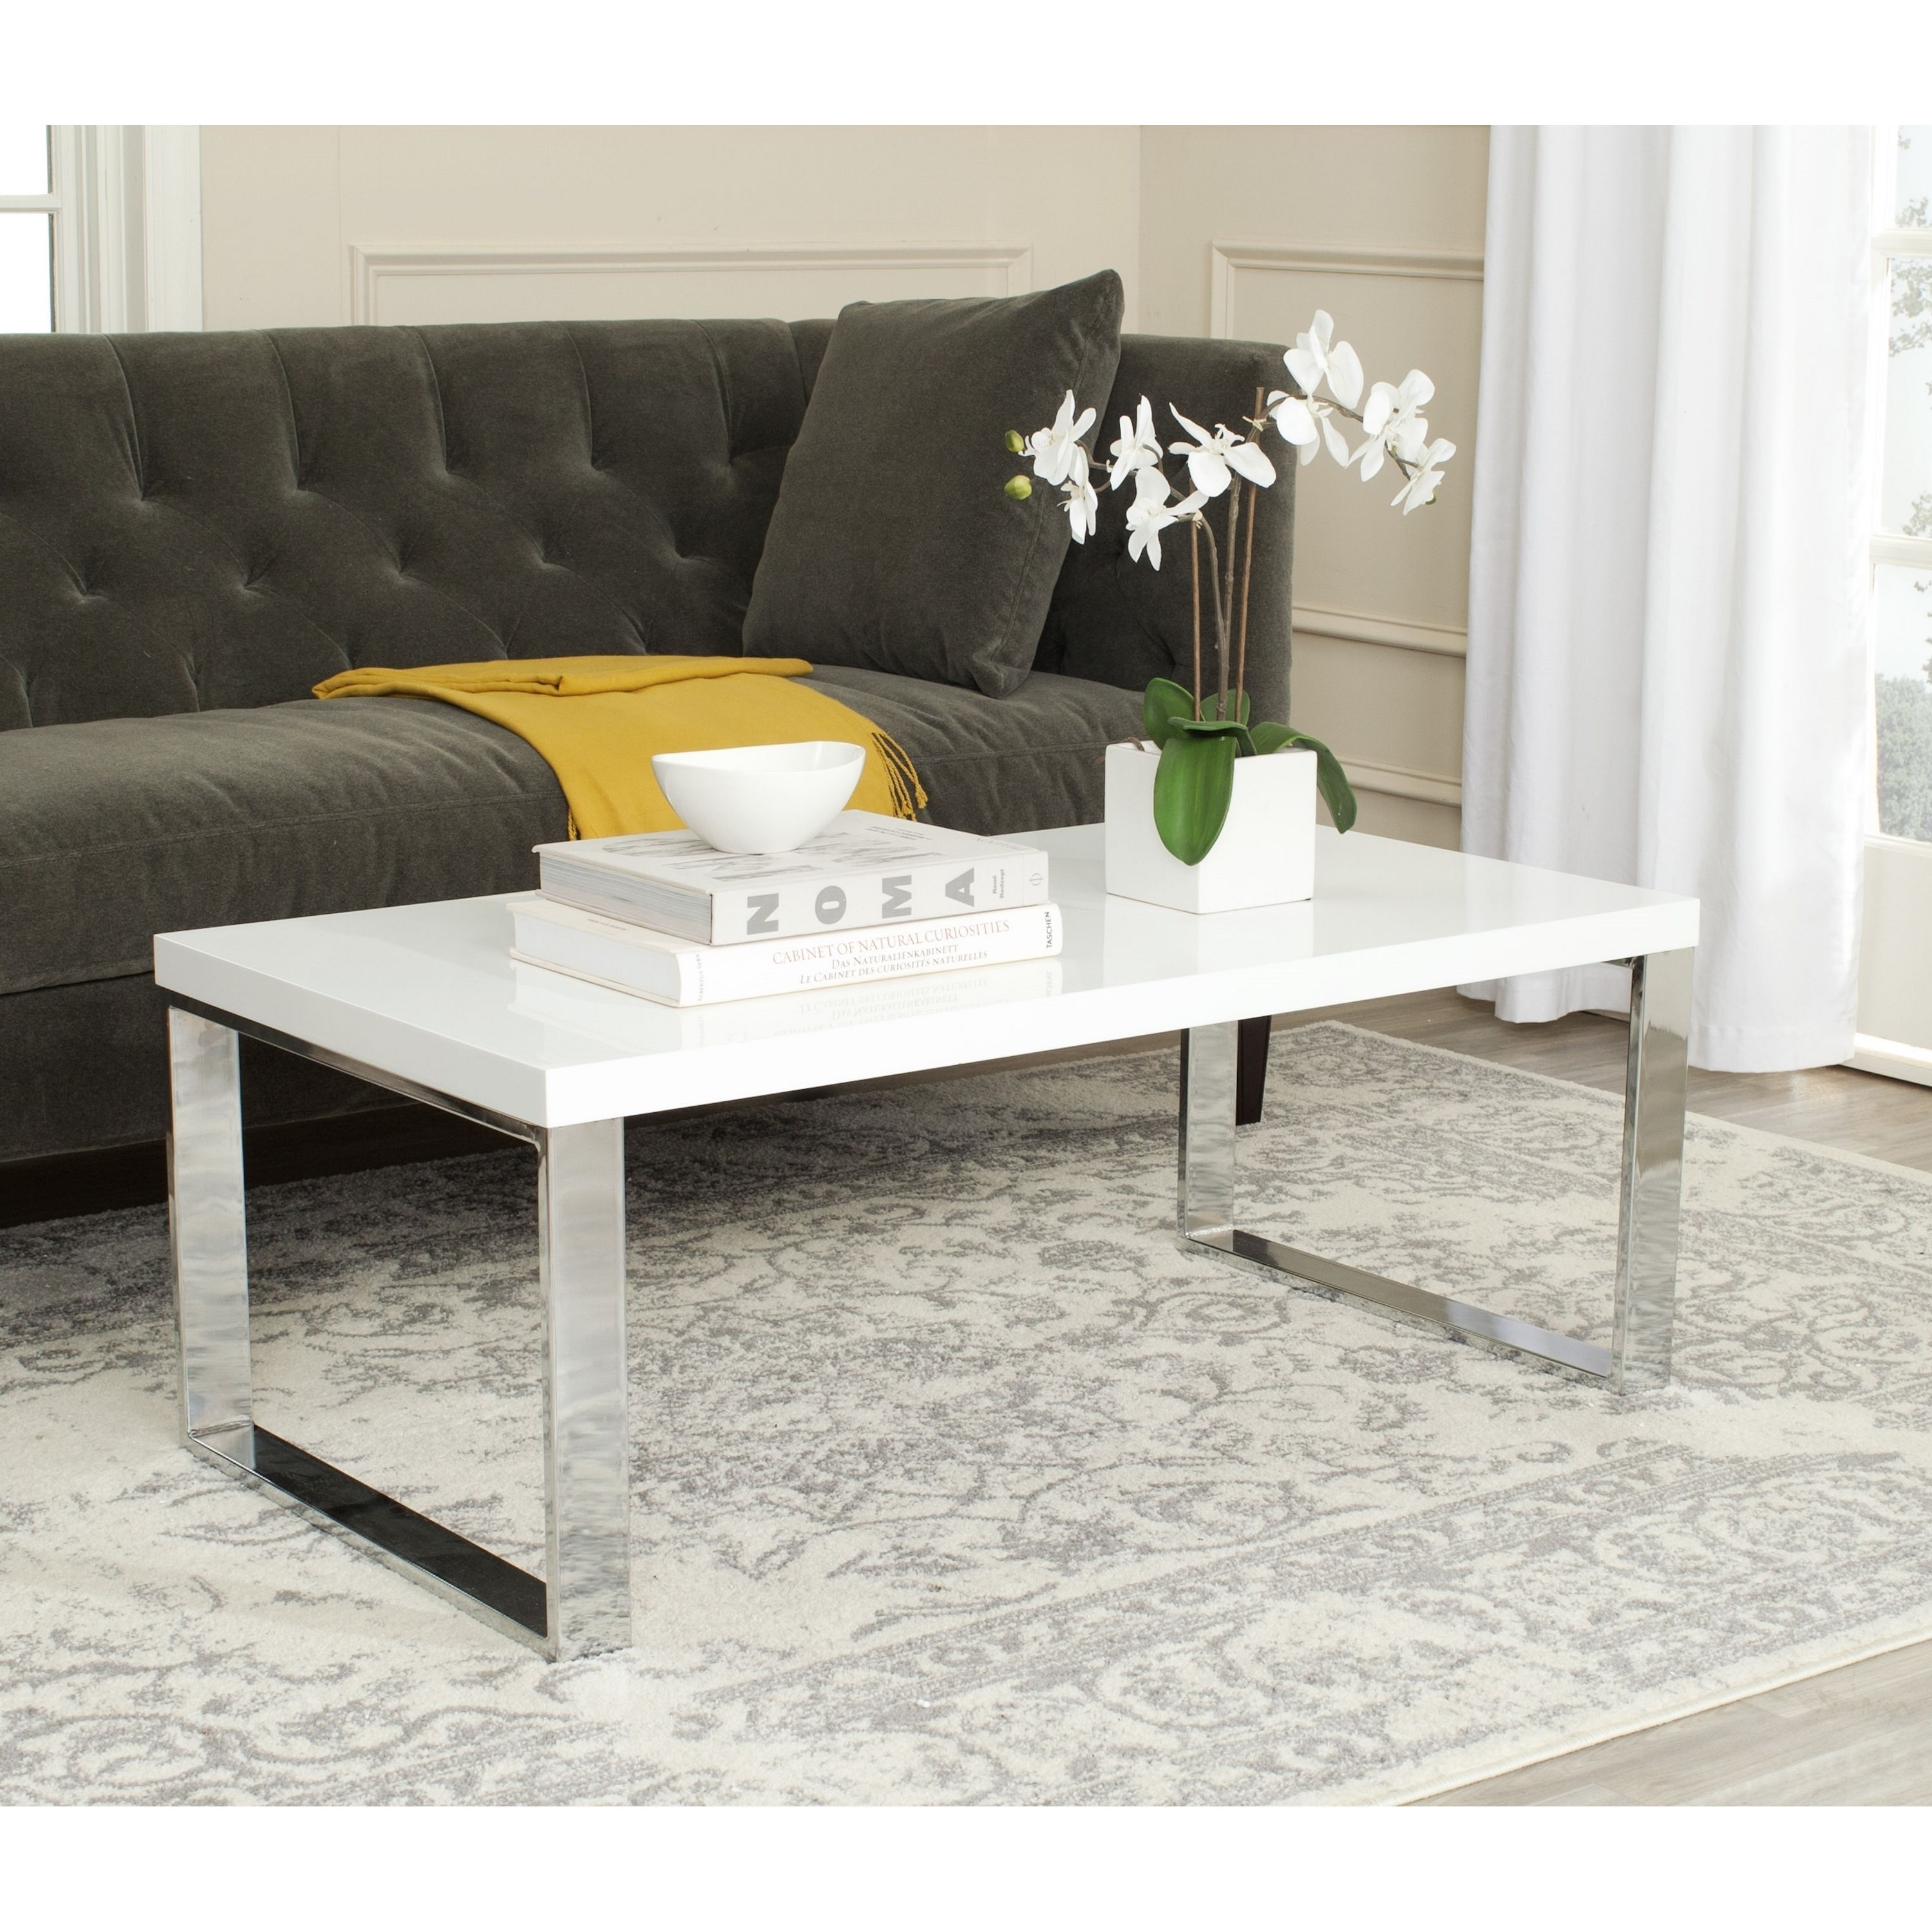 50+ White coffee table with storage walmart inspirations